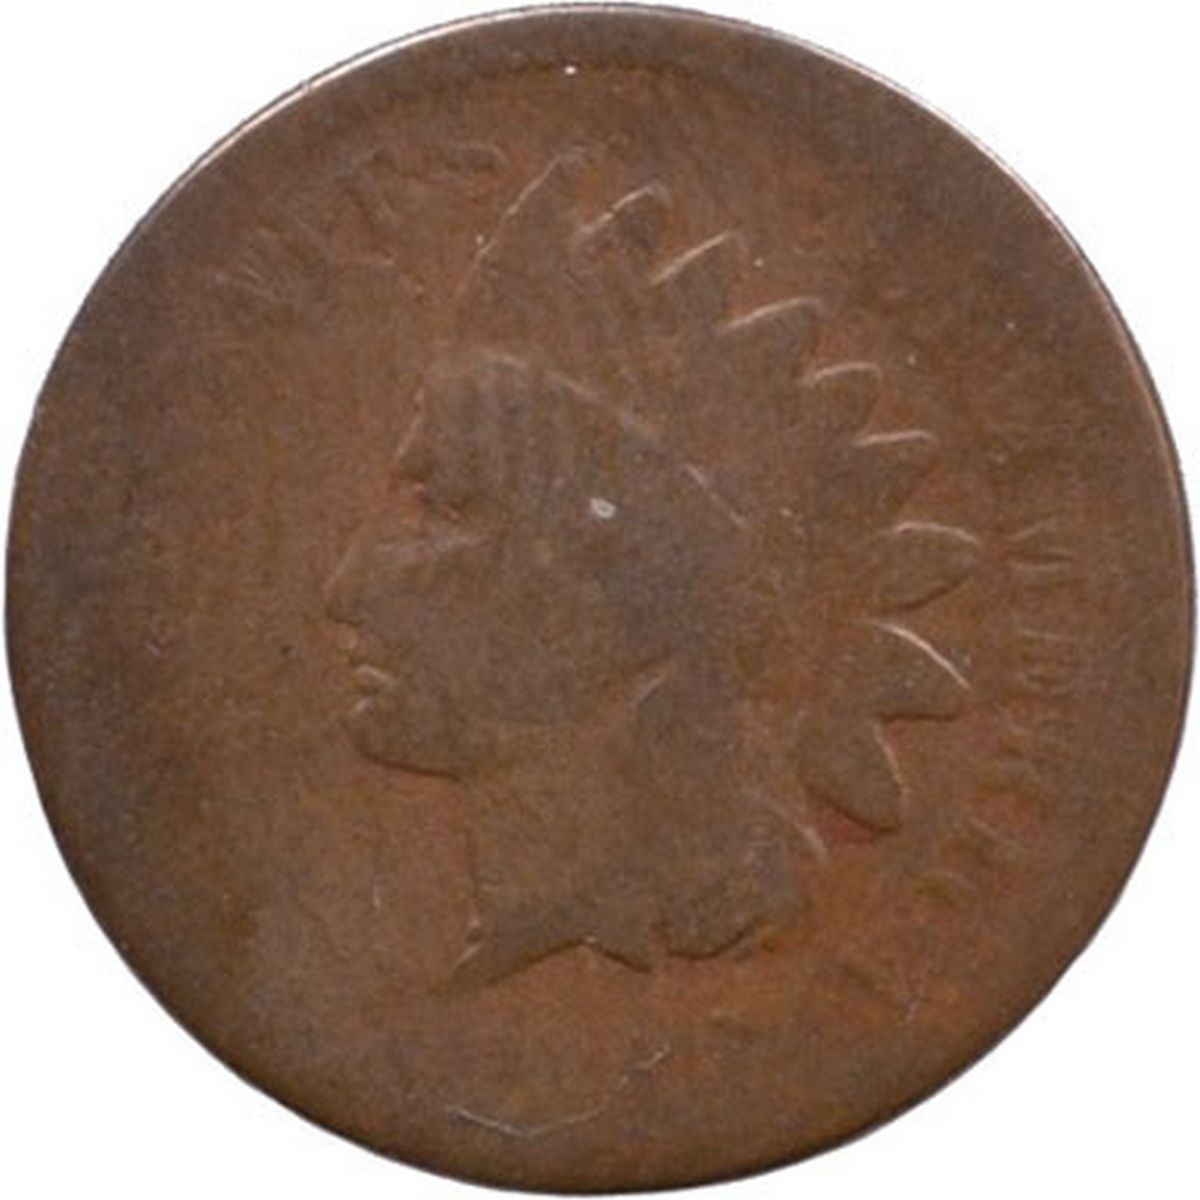 Obverse of 1868 CUD-005 - Indian Head Penny - Photo by David Poliquin